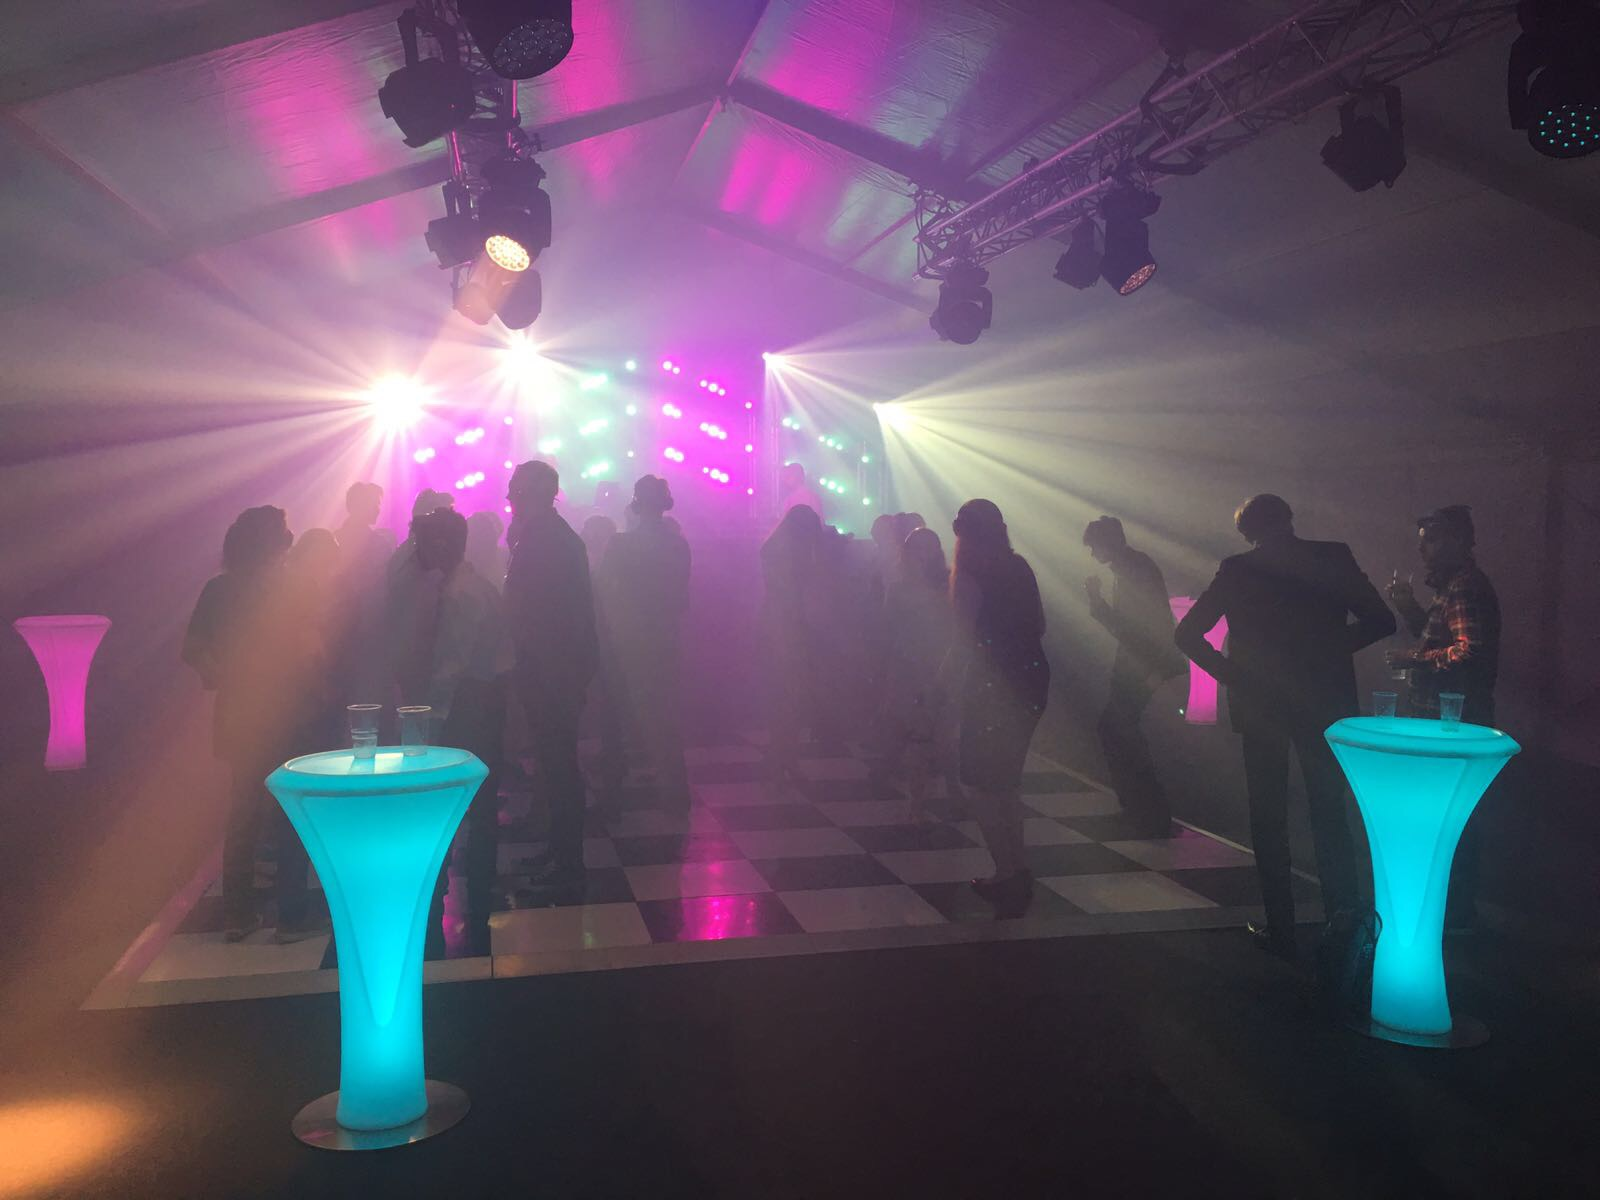 Glowing LED Poseur Tables for Events